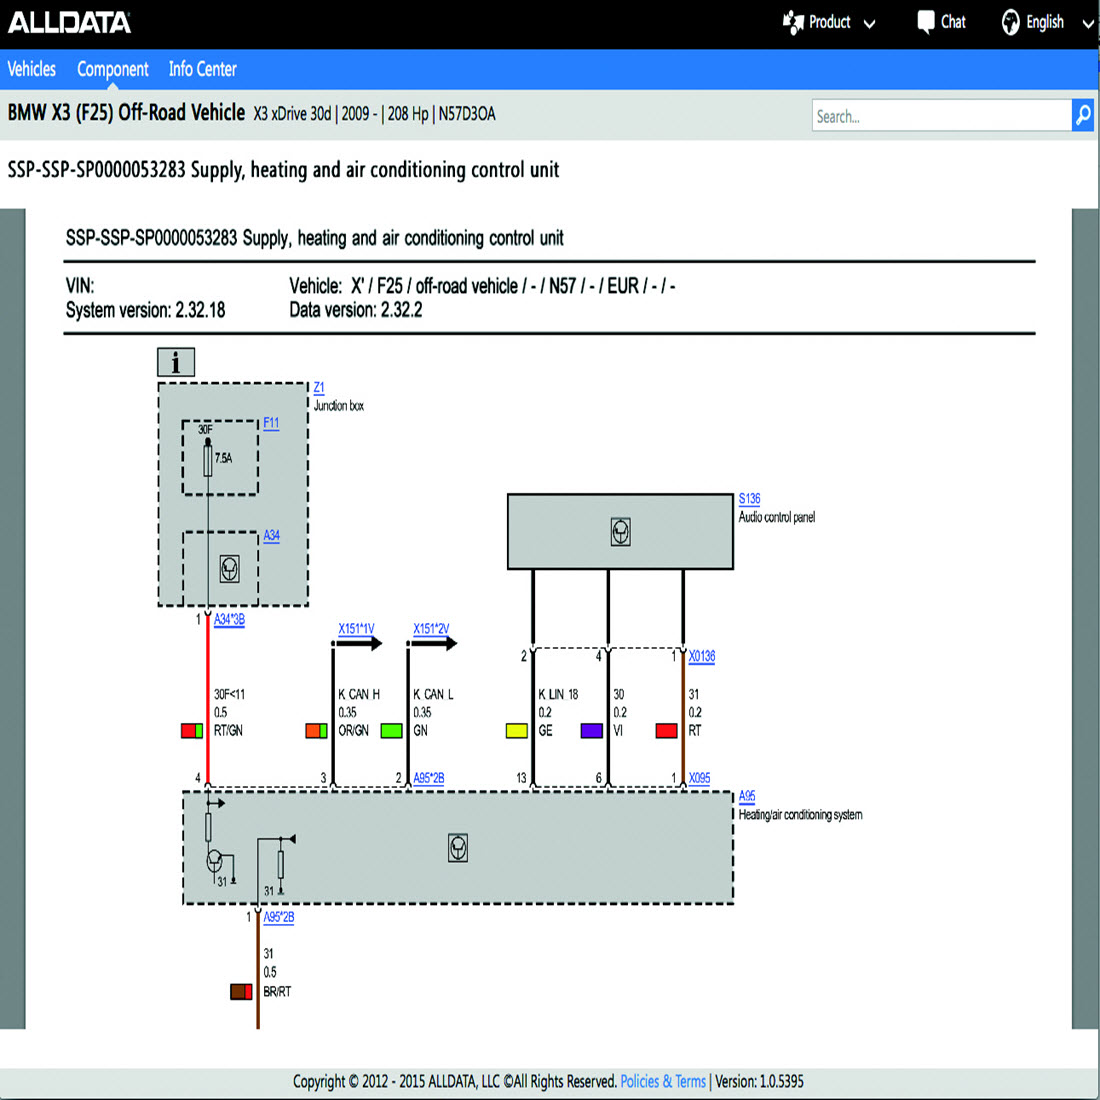 Electrical Wiring Diagram Information : Alldata the industry standard for oe repair information